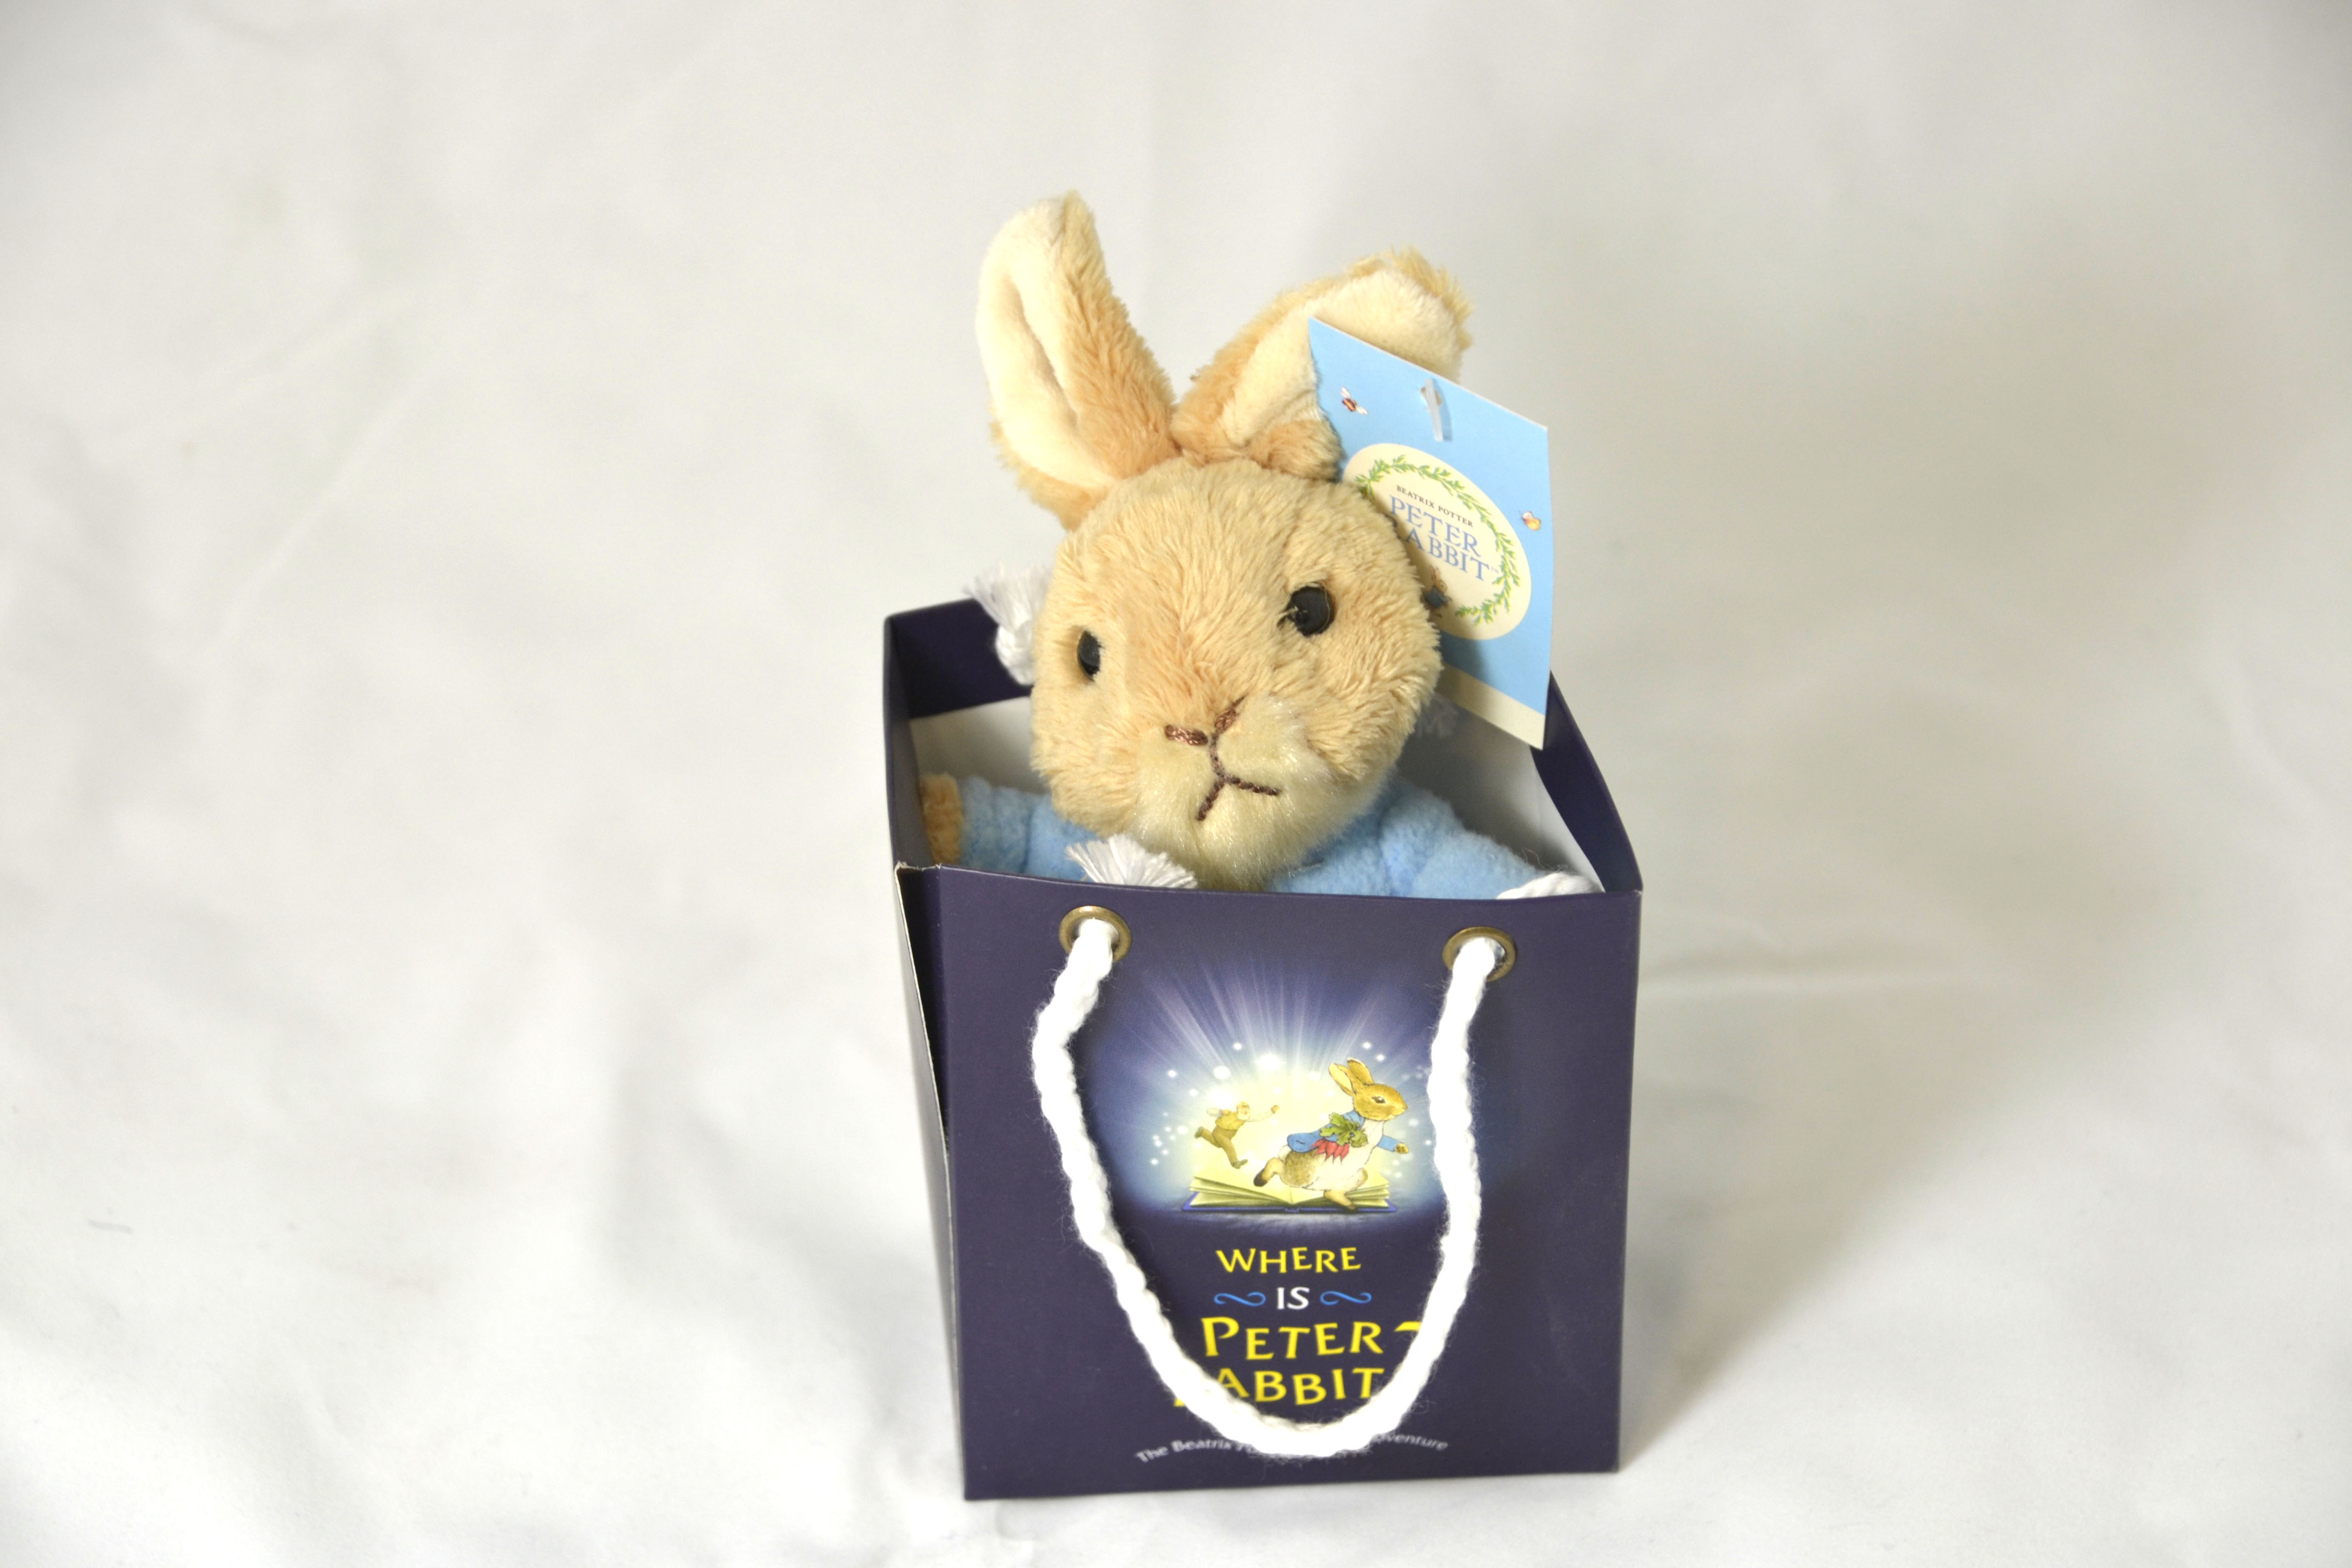 Gift Bag Toys : Where is peter rabbit soft toy in gift bag small